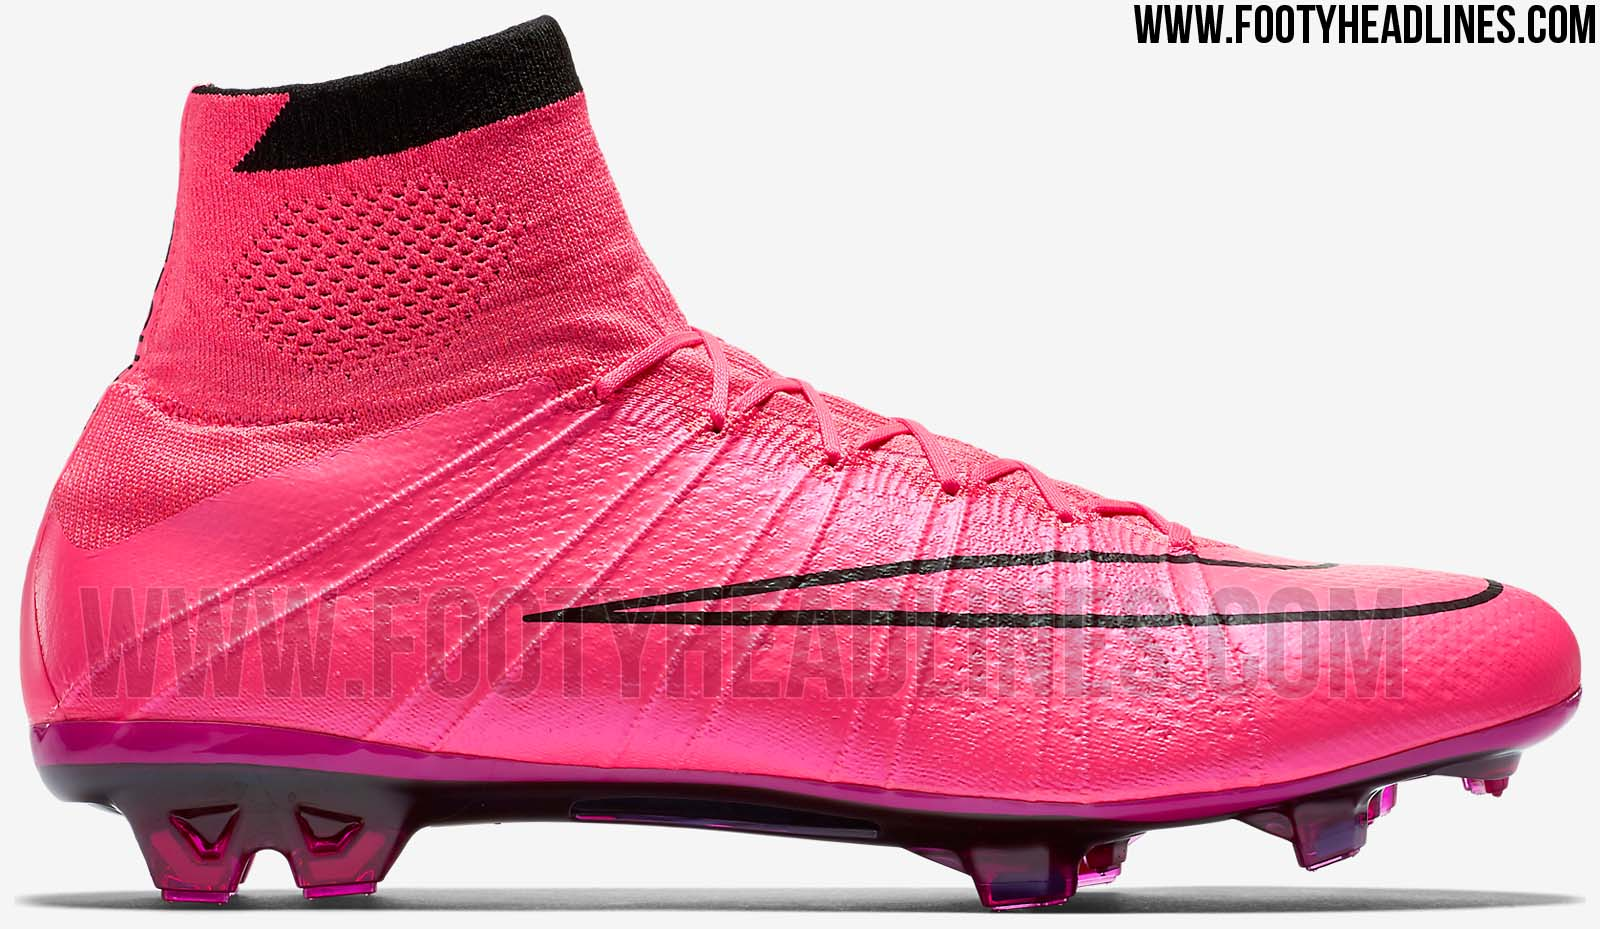 d9bf3965a Buy 2 OFF ANY cr7 pink cleats CASE AND GET 70% OFF!